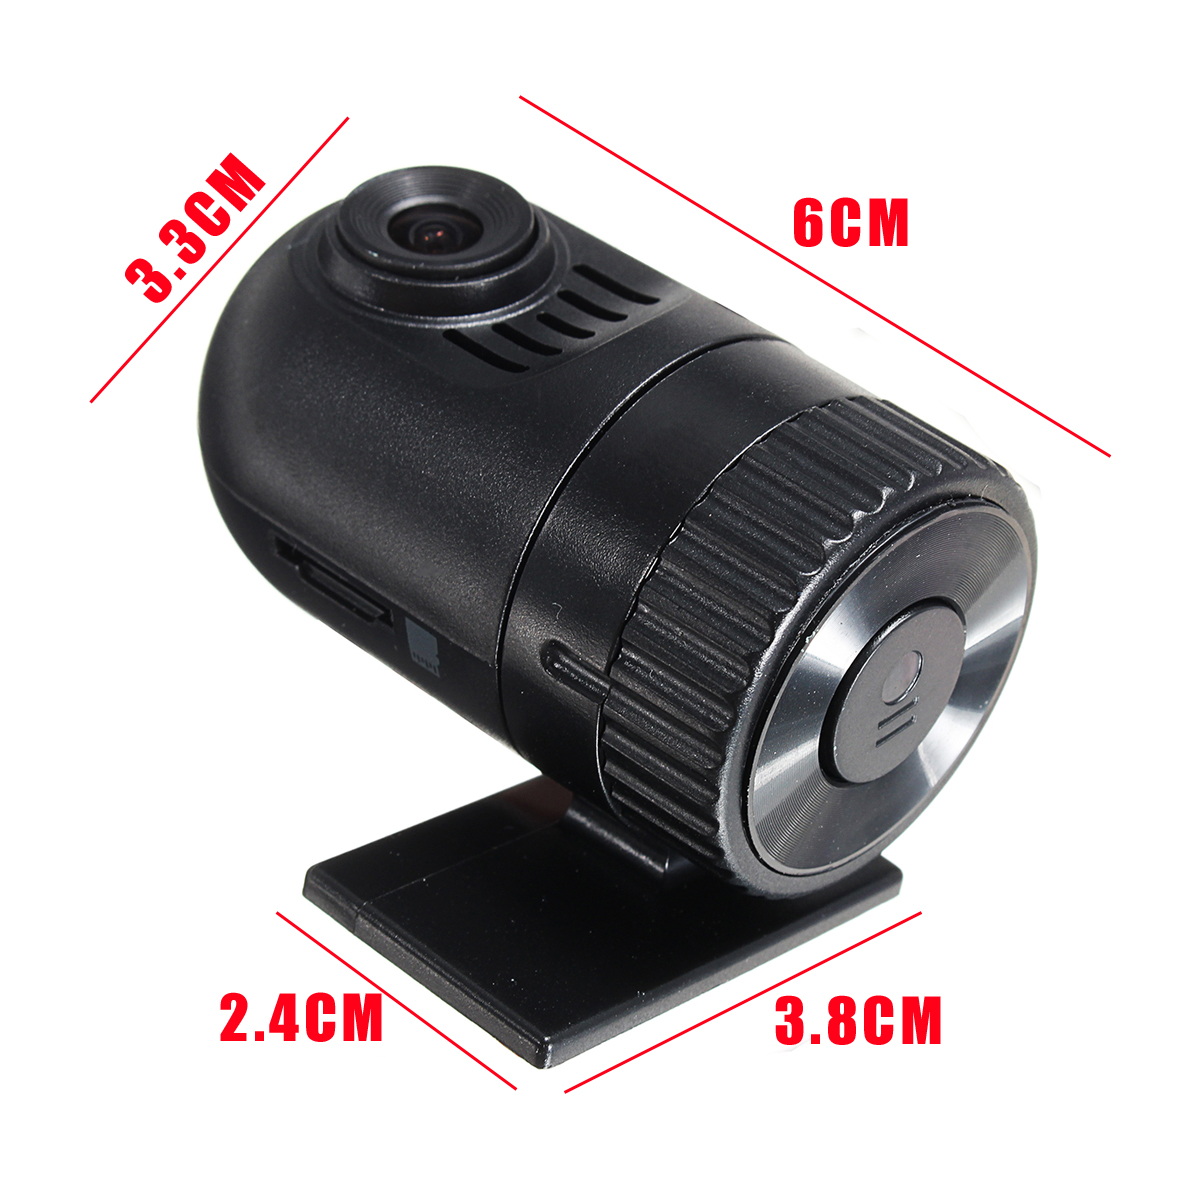 HD Mini Car DVR Video Recorder Camera Hidden Vehicle Dash Cam Night Vision